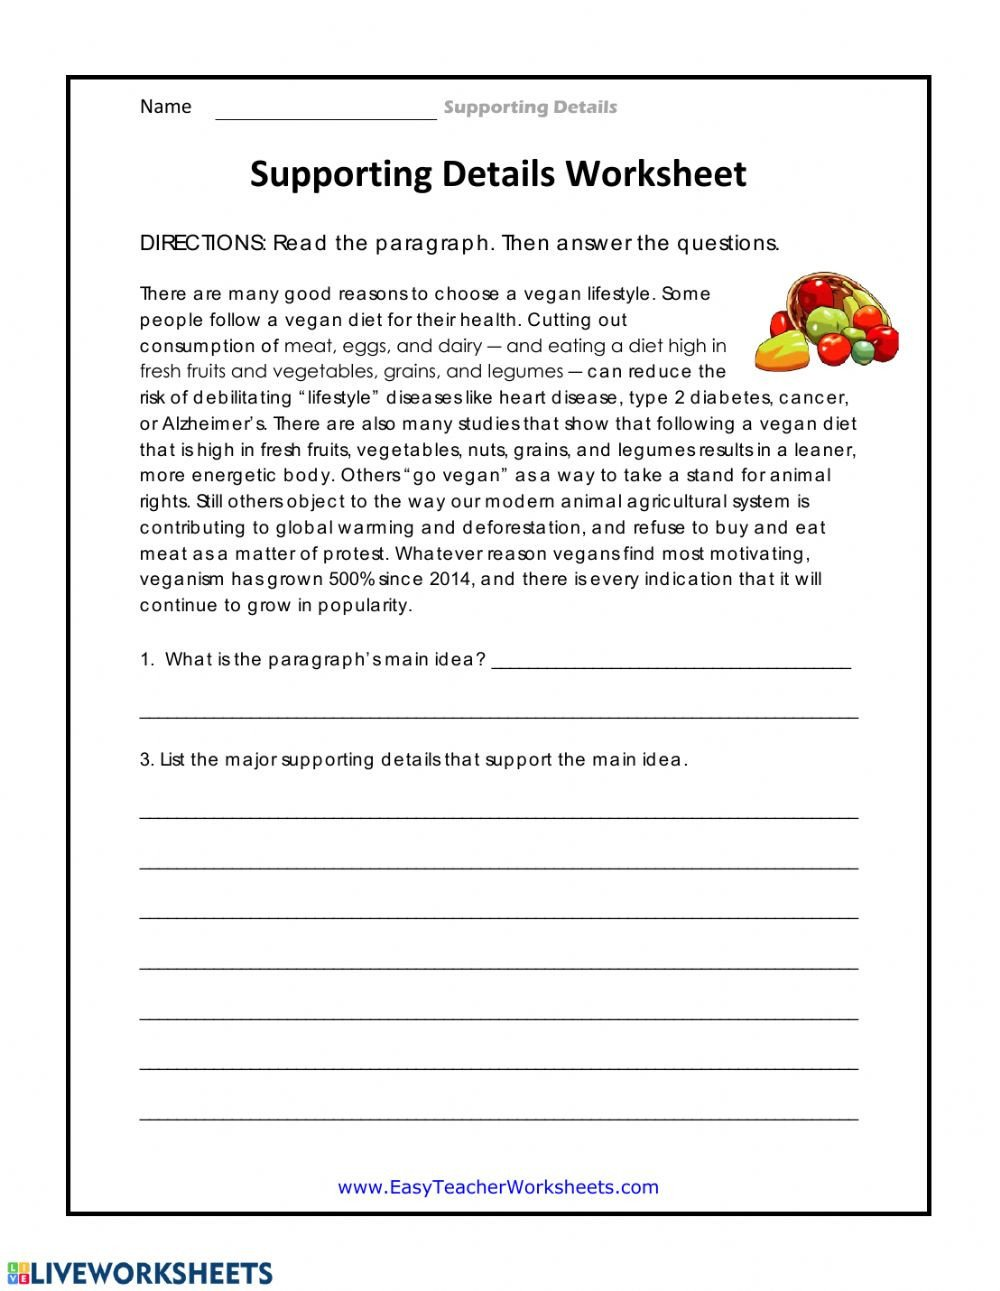 Supporting Details Worksheet Supporting Details Worksheet Interactive Worksheet